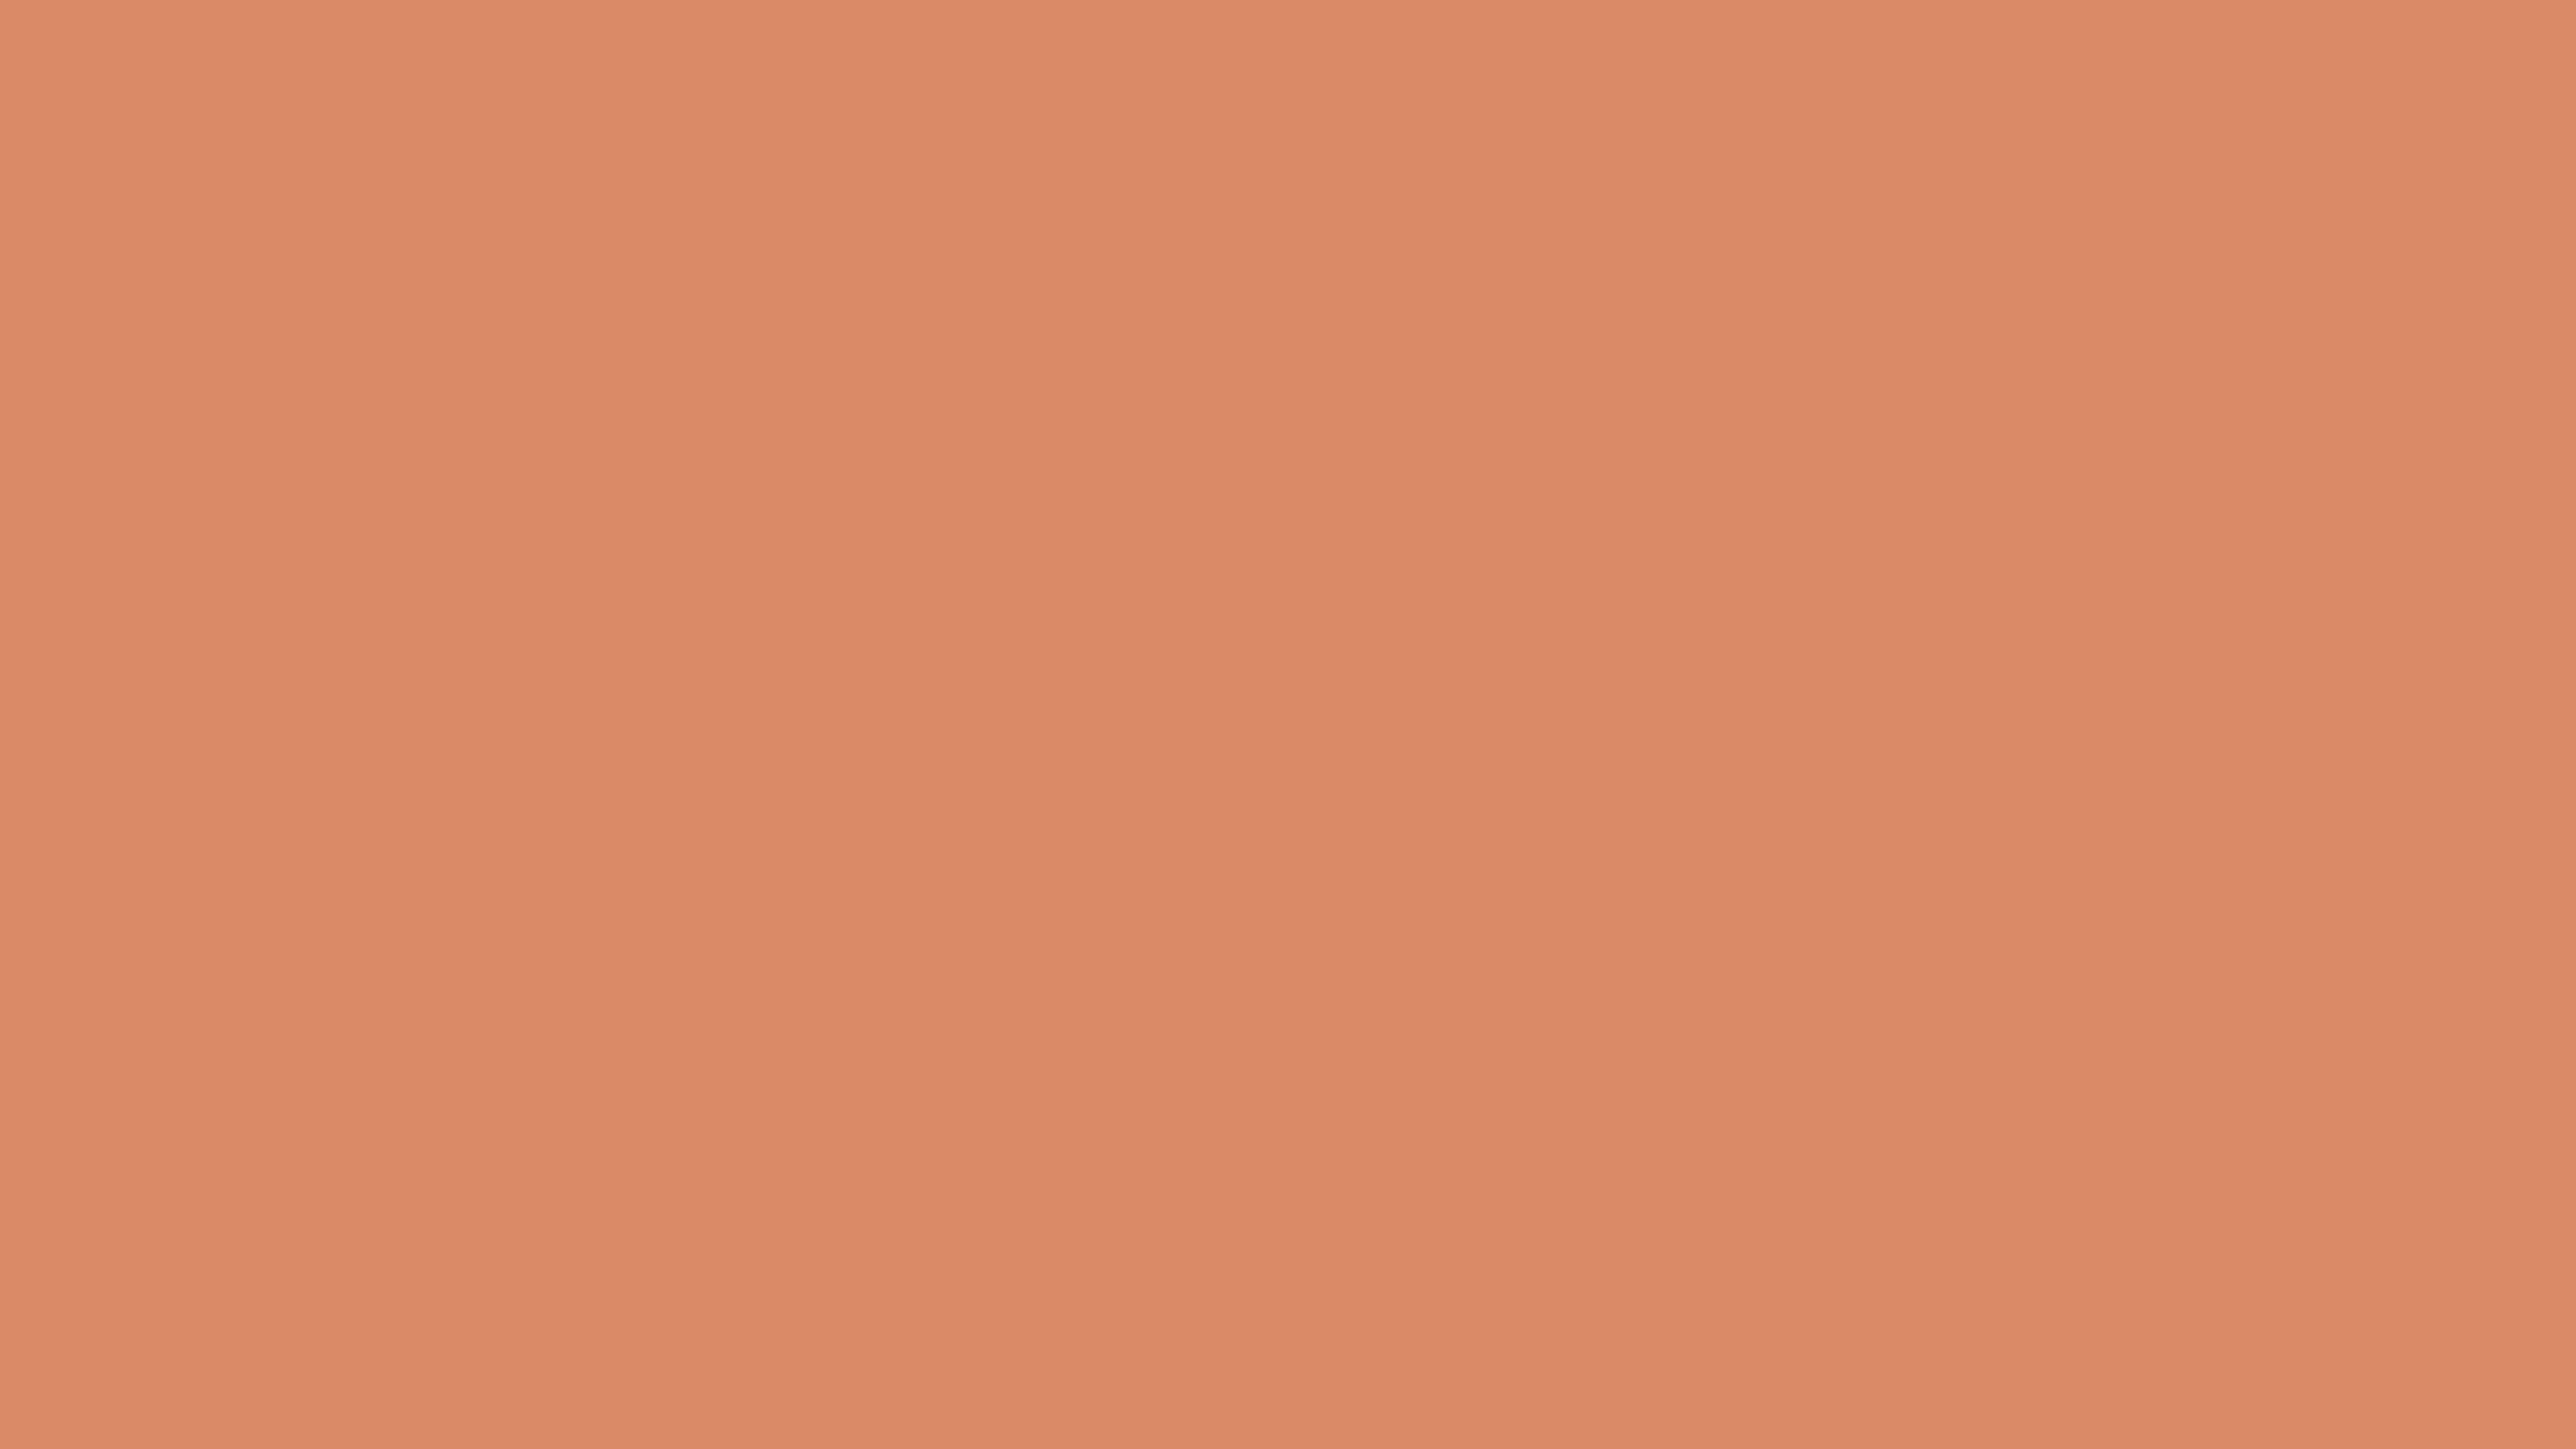 4096x2304 Pale Copper Solid Color Background